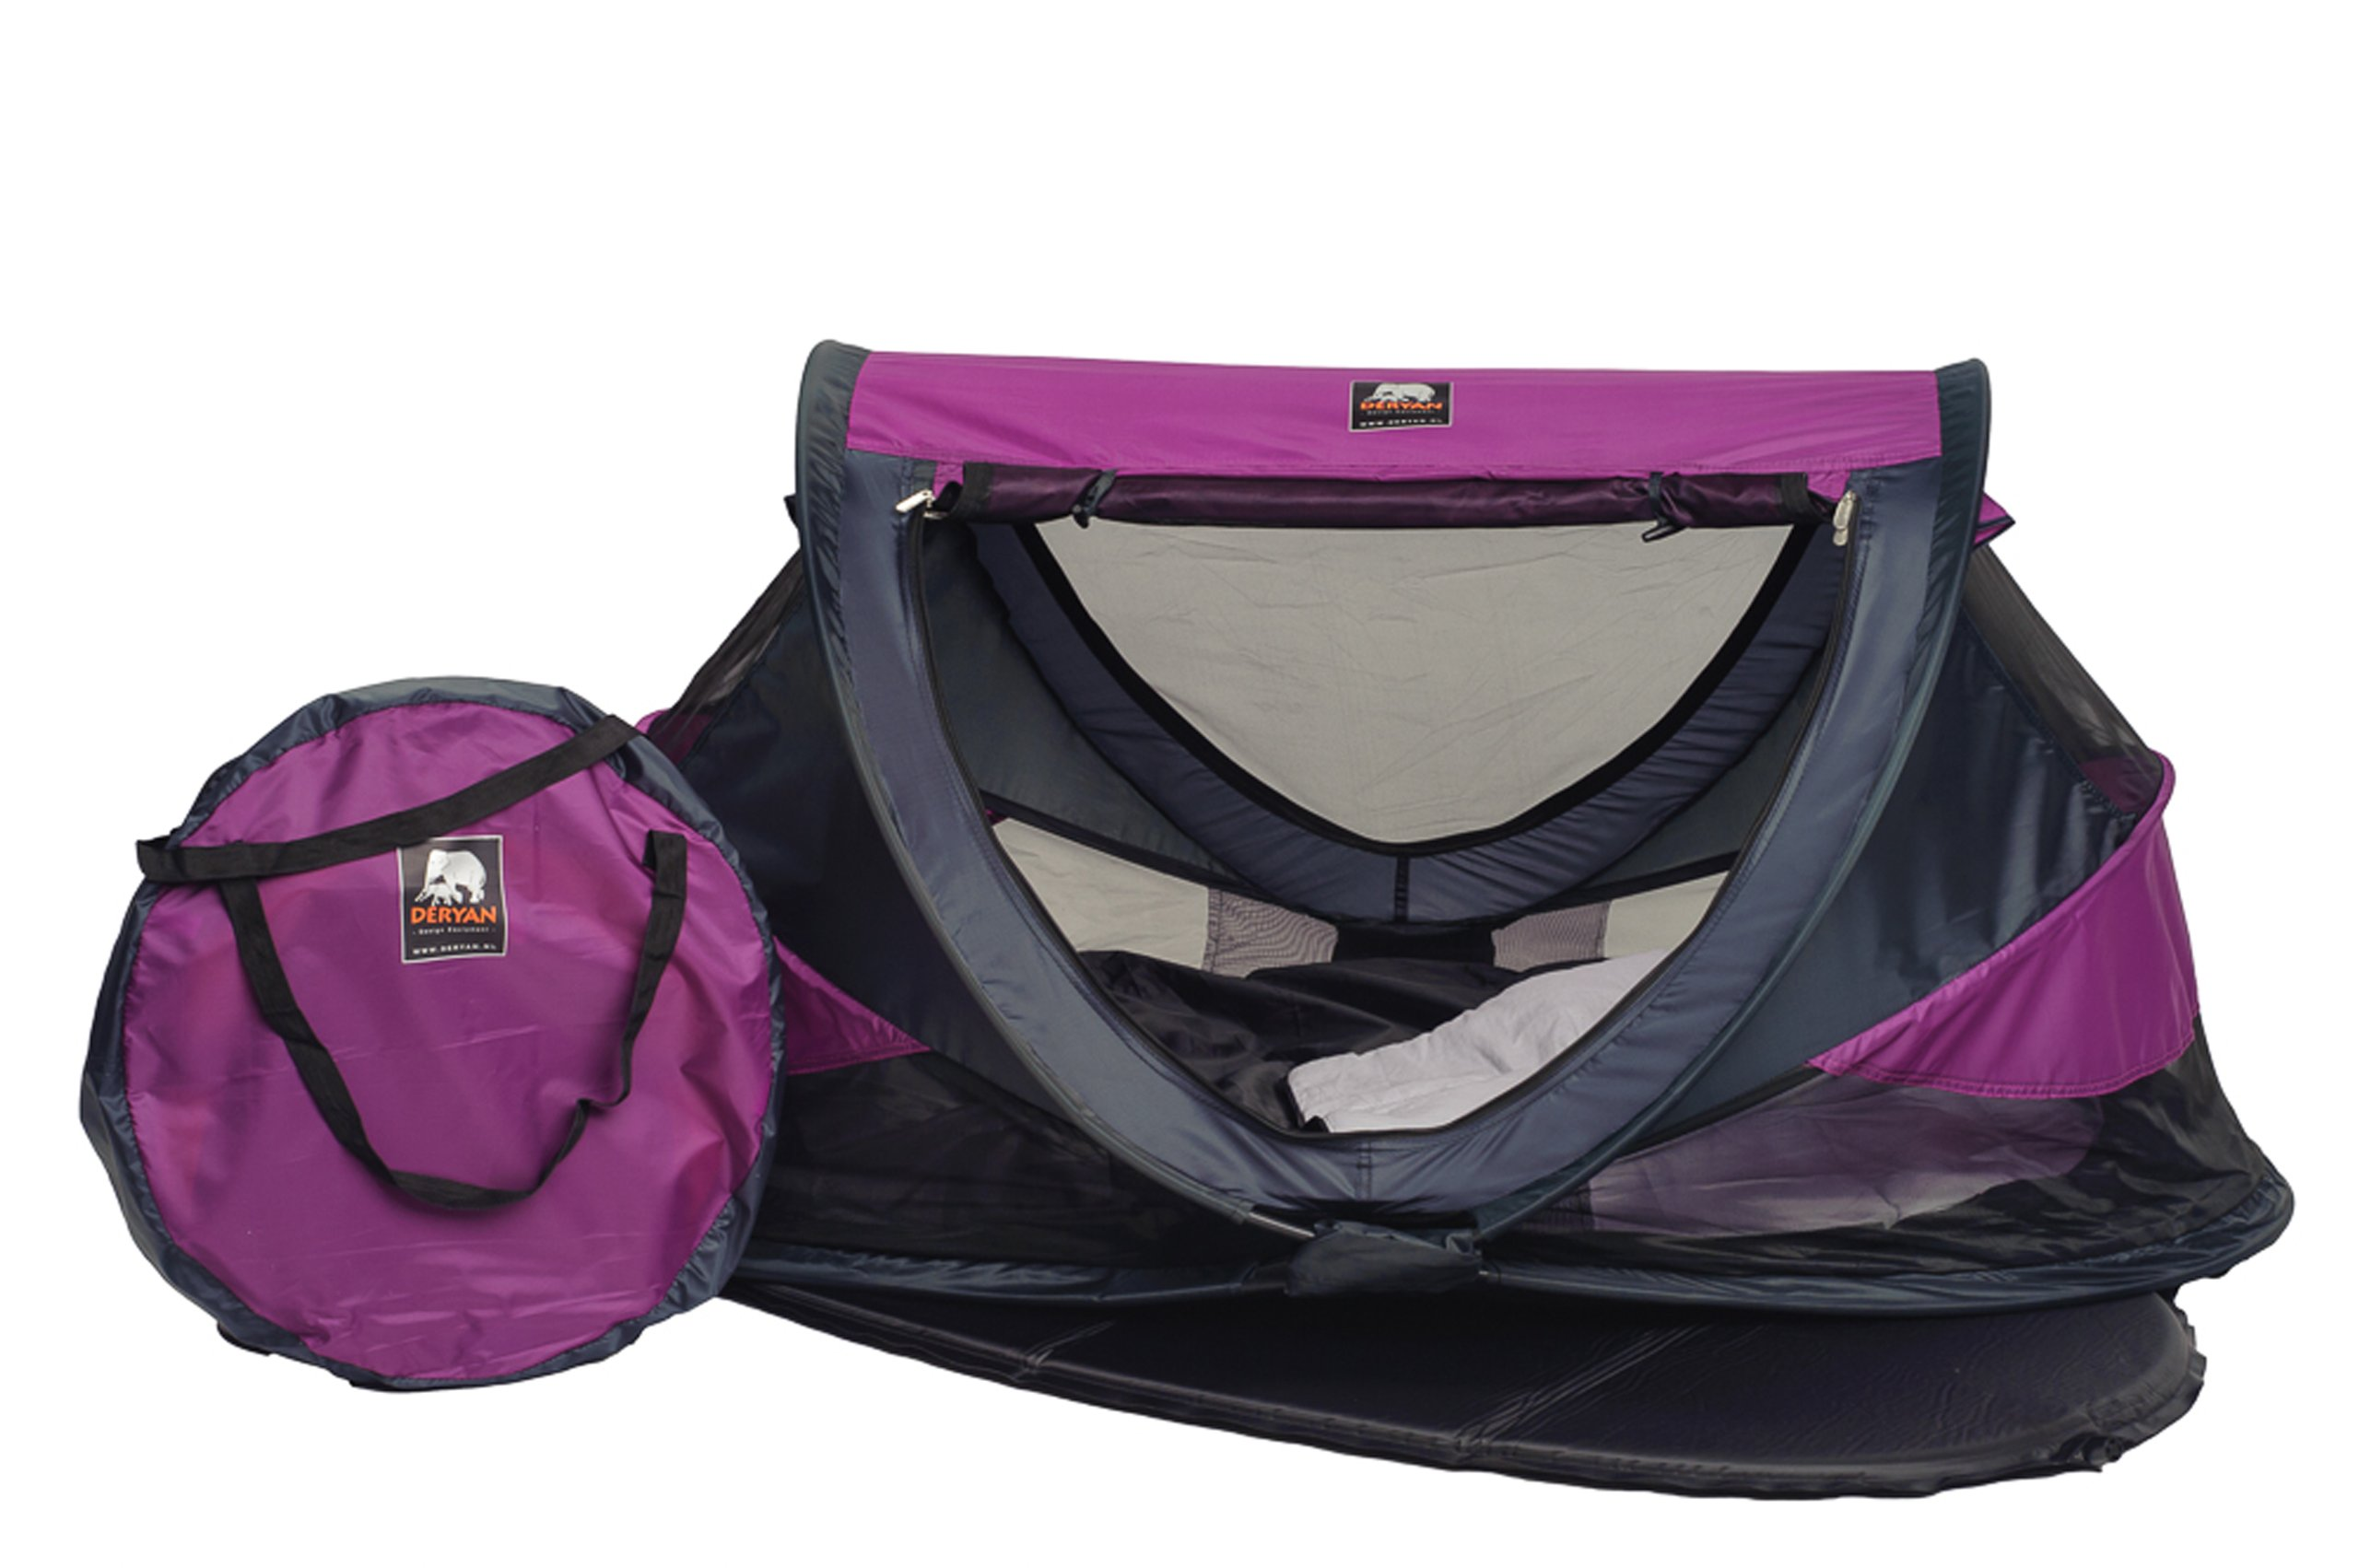 Travel Cot Peuter Luxe (Purple) Deryan 50% UV Protection and flame retardant fabric Setup in 2 seconds and a anti-musquito net  2